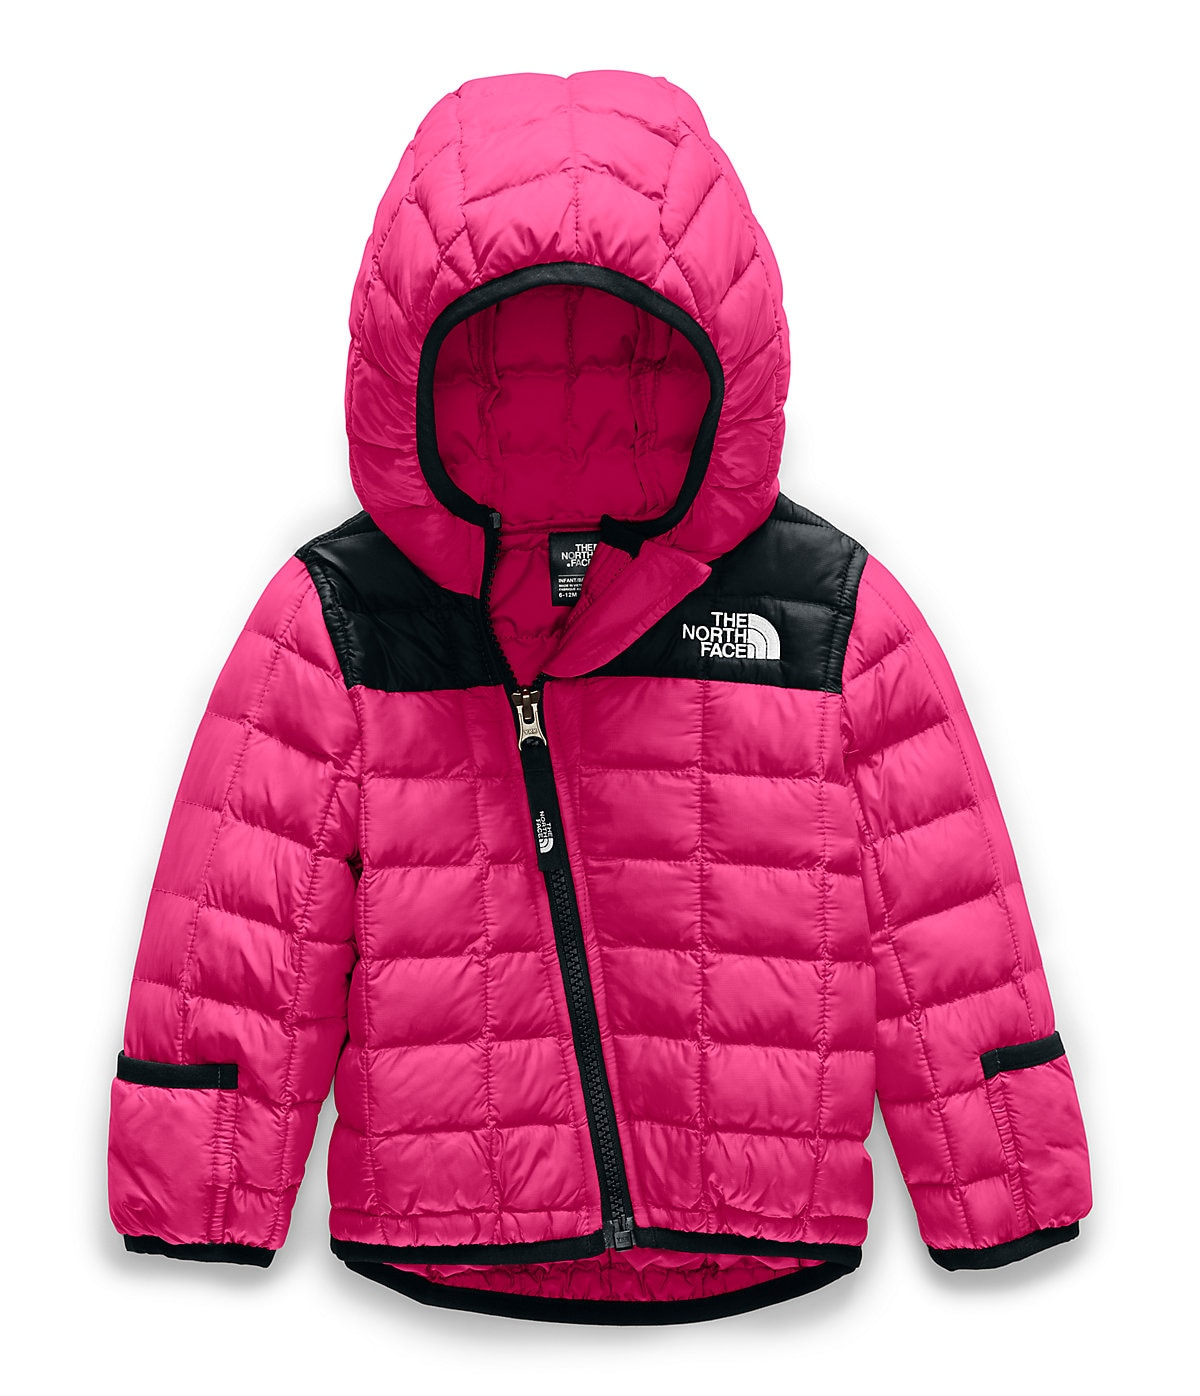 Infant Thermoball Eco Hoodie The North Face In 2021 Boy Outerwear Winter Jackets Youth Hoodies [ 1396 x 1200 Pixel ]